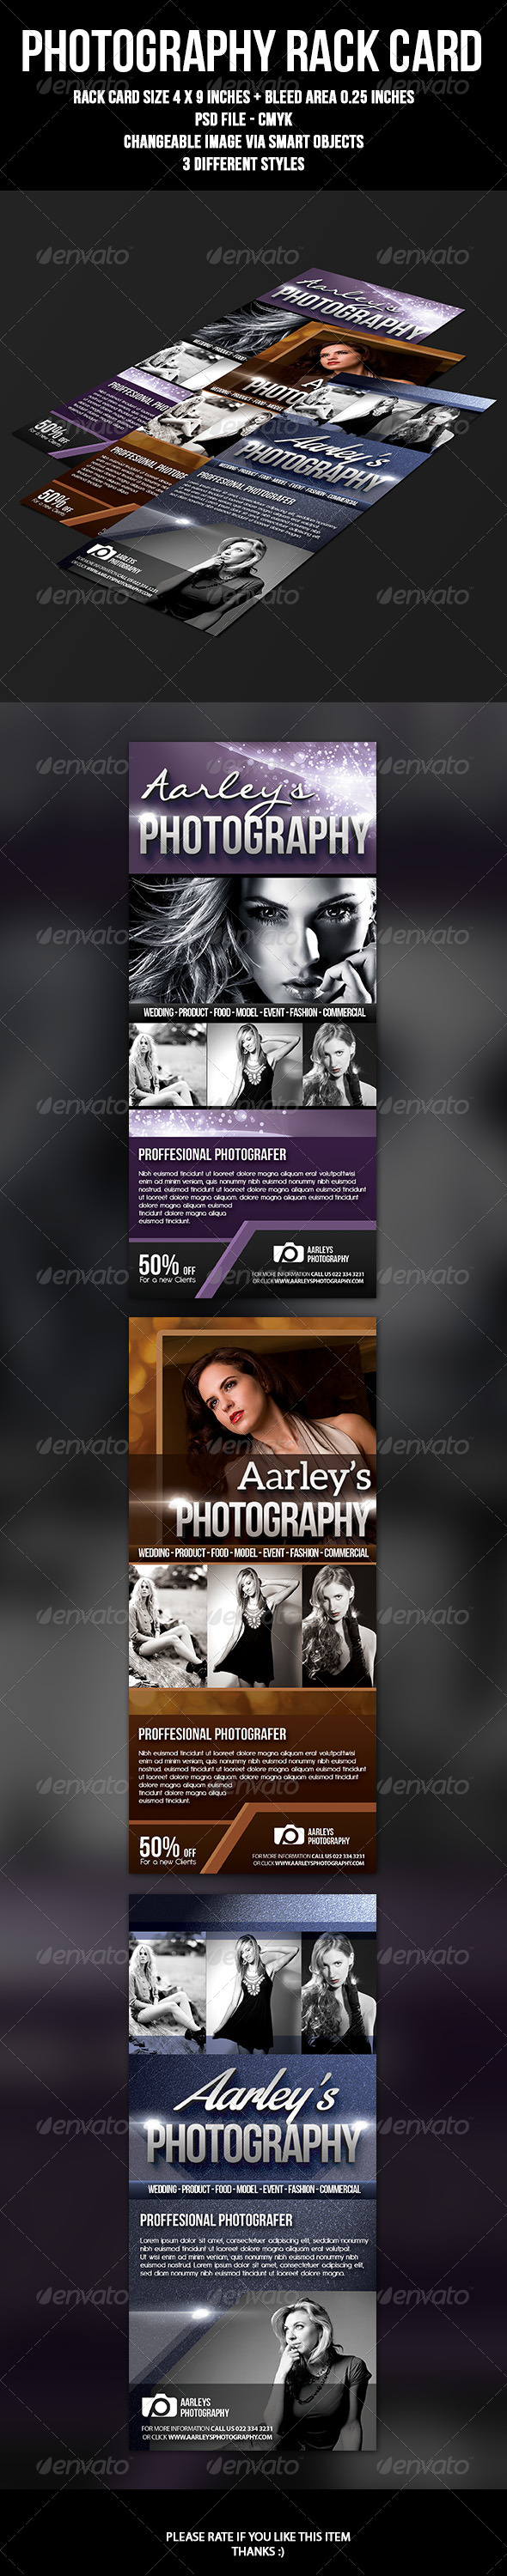 Photography Rack Card - Commerce Flyers